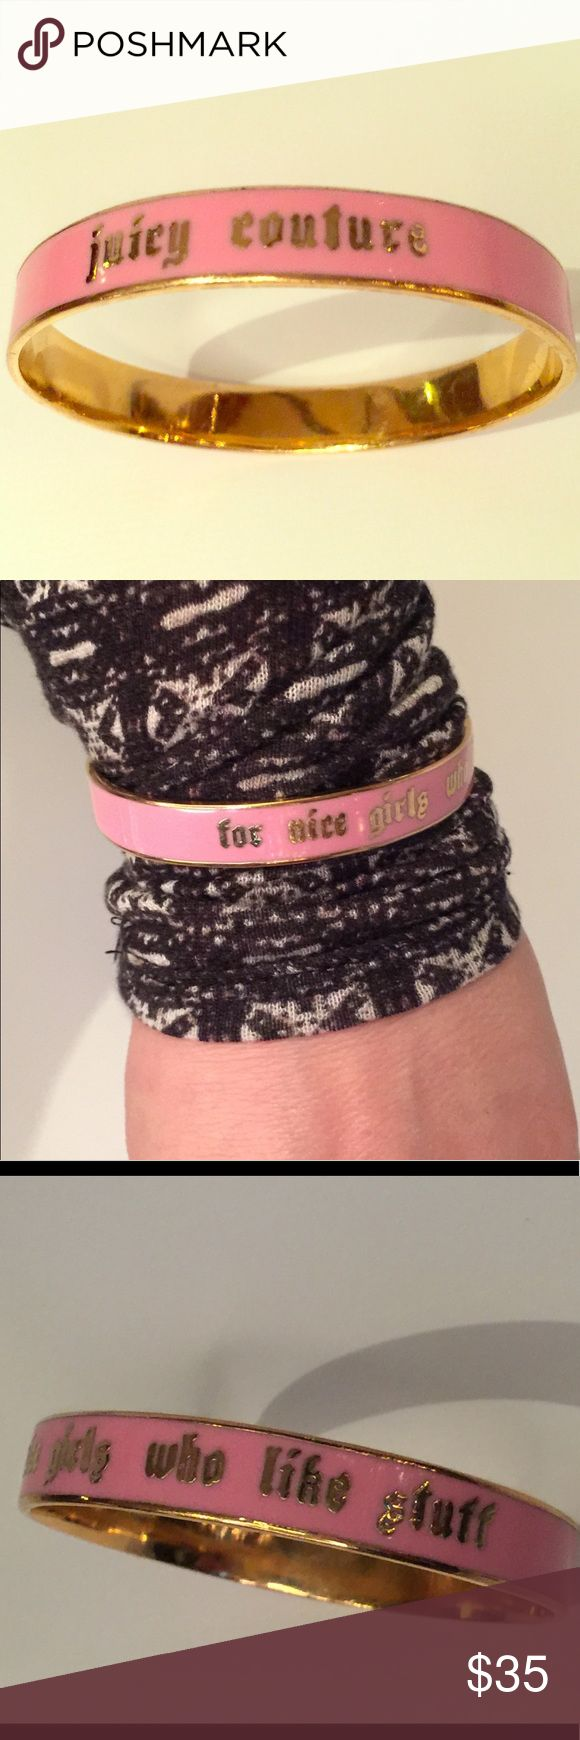 Juicy couture pink and gold bangle bracelet  nice Juicy couture pink and gold bangle bracelet  for nice girls who like stuff Juicy Couture Jewelry Bracelets